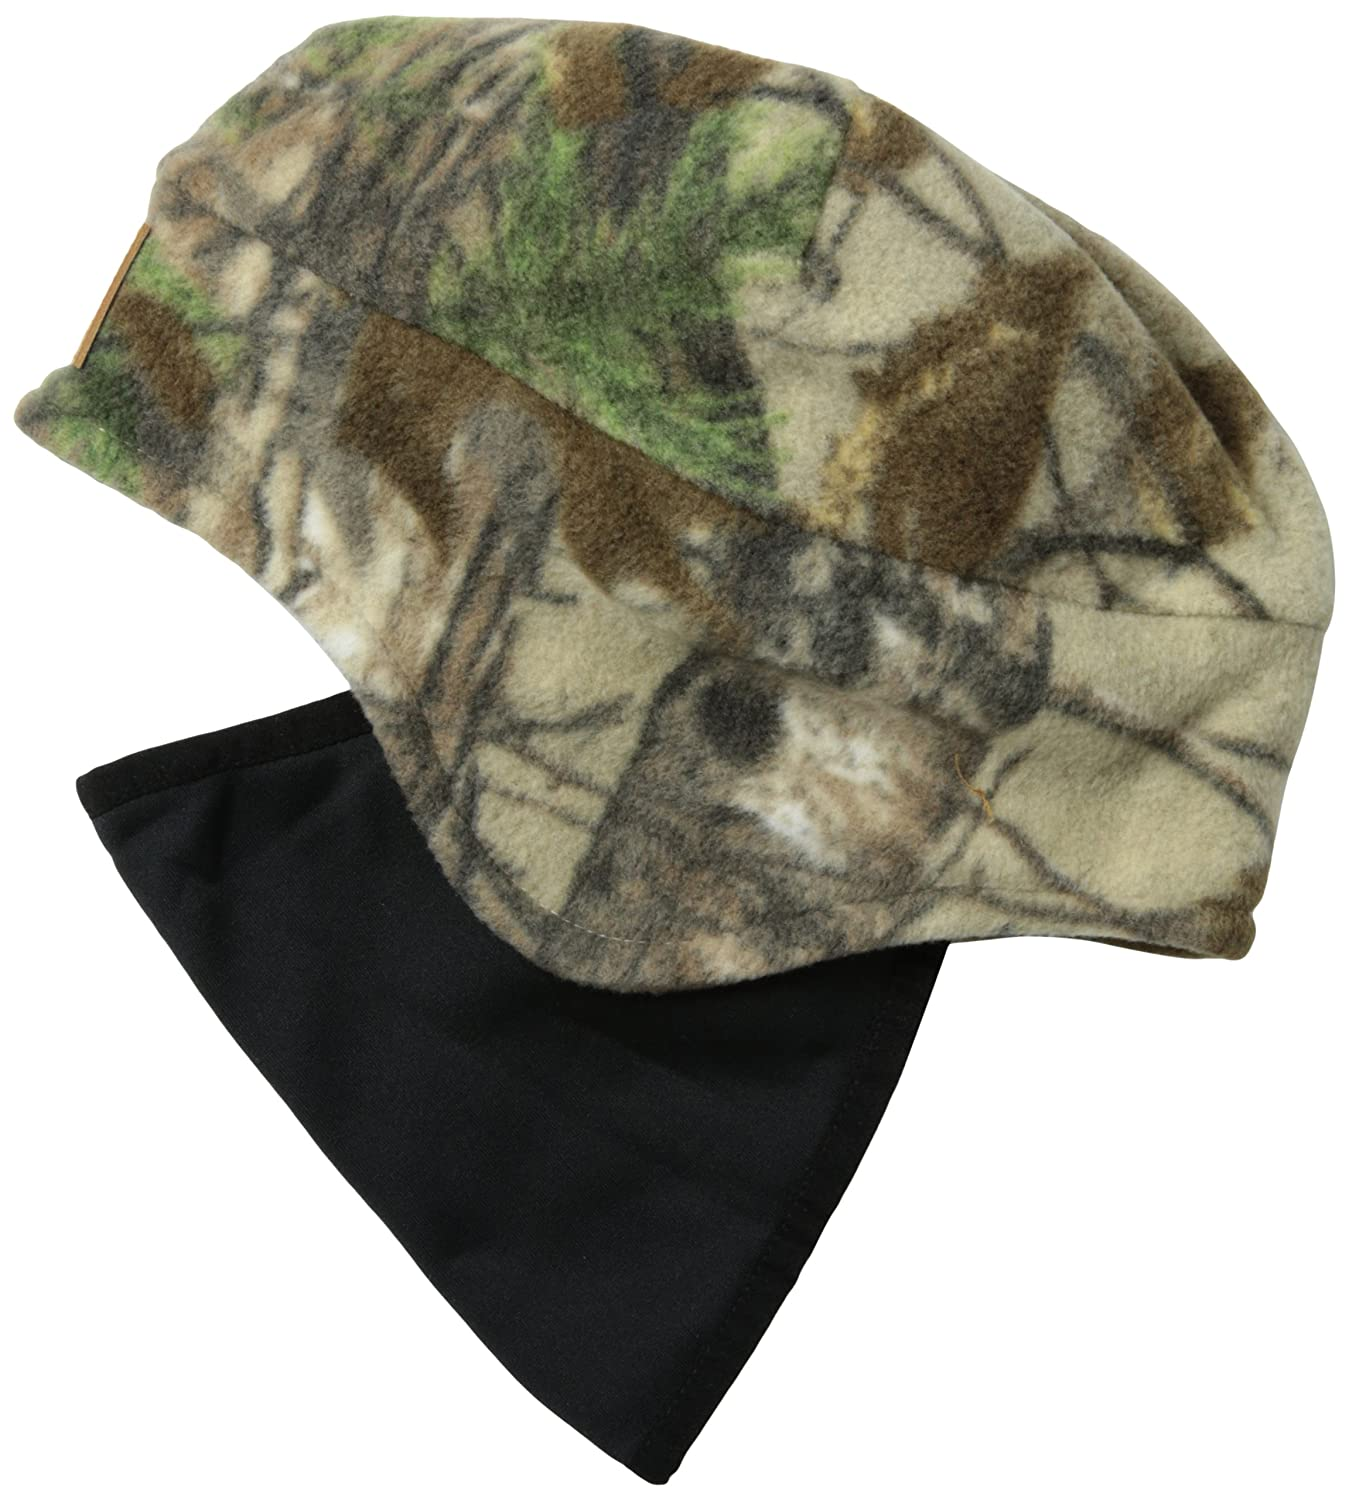 55b9a4b417f4c Carhartt Men s Workcamo Fleece 2 In 1 Headwear at Amazon Men s Clothing  store  Cold Weather Hats